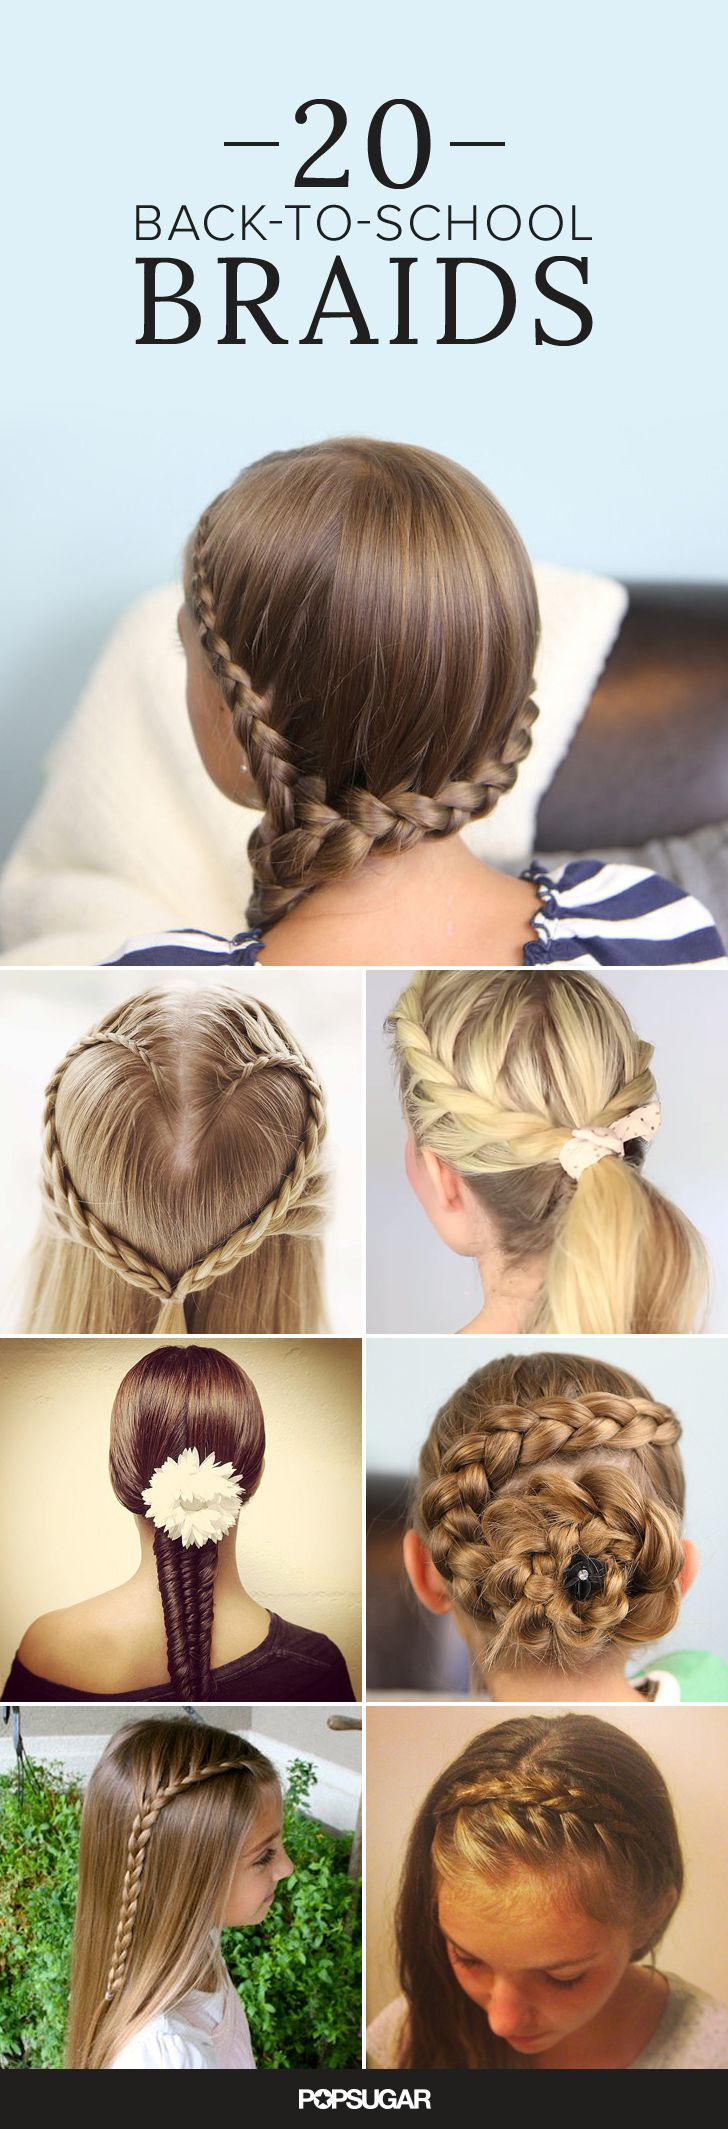 You've chosen the outfit, purchased the school supplies, and readied the backpack. Now what to do with the hair?! We have 20 unique styles that are sure to turn heads — while making your daughter's hair more beautiful — at school.